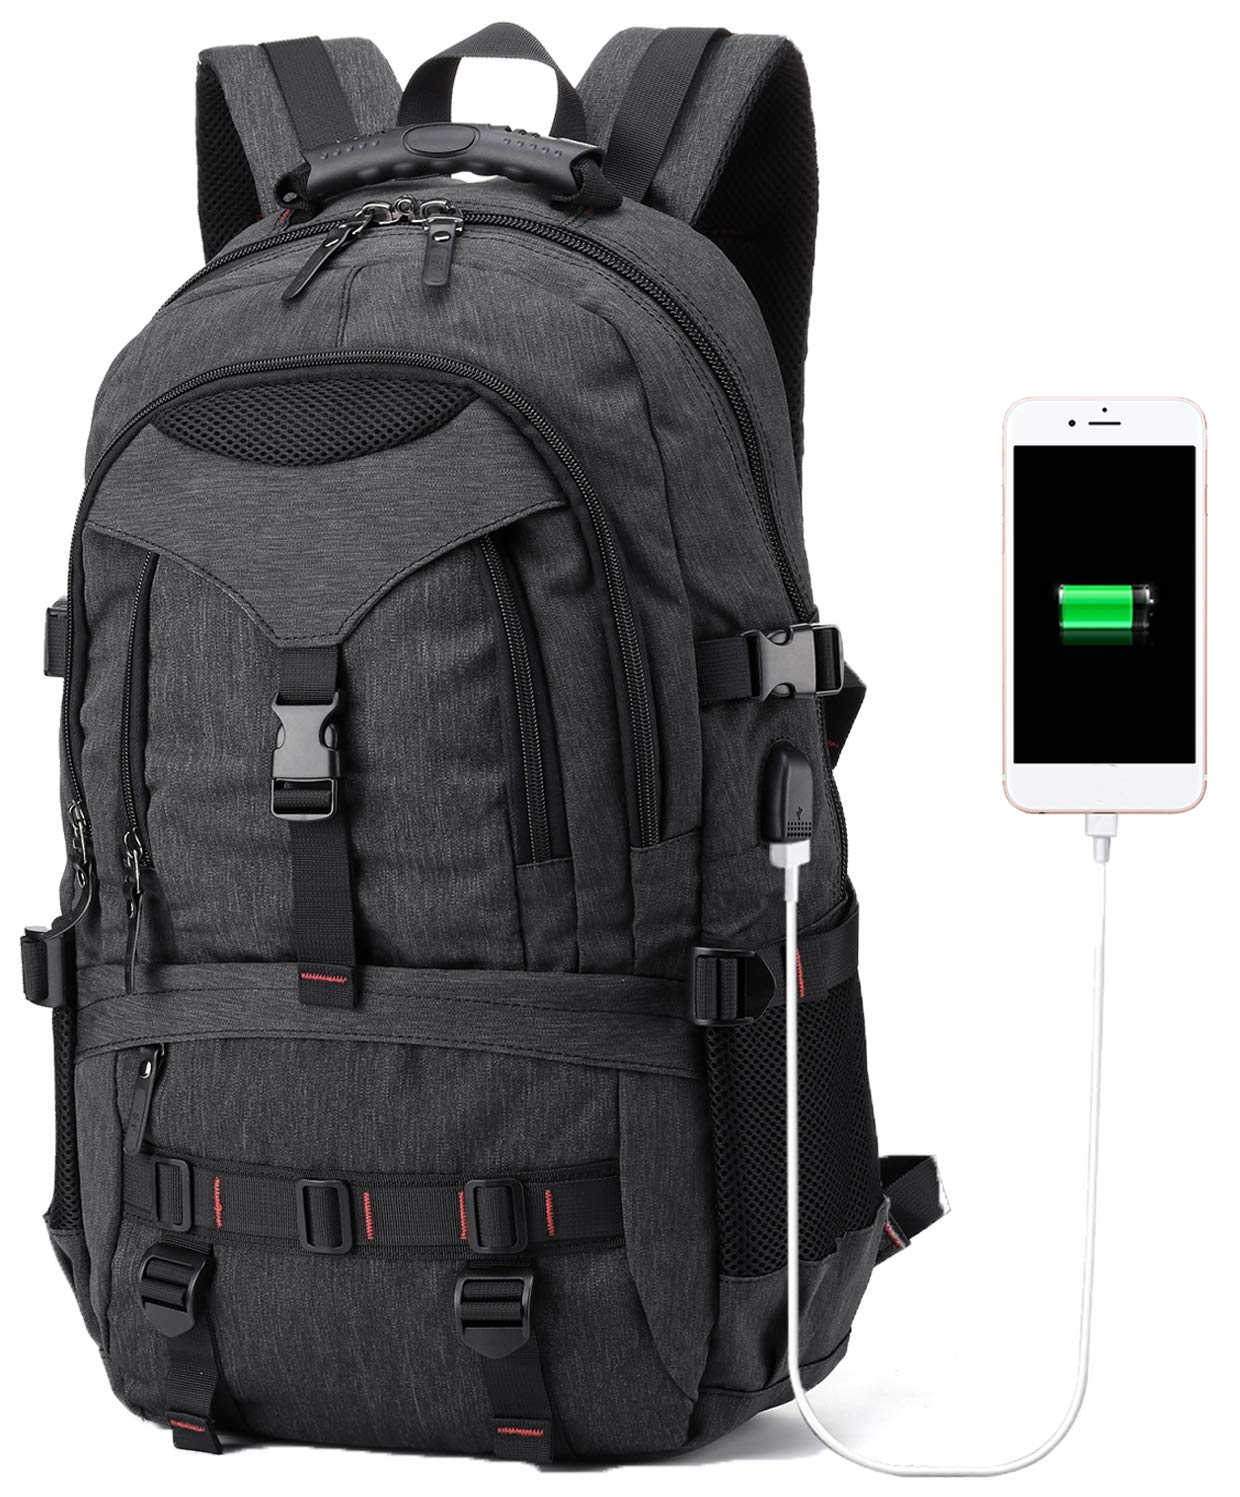 BTOOP Travel Laptop Backpack with USB for Natebook with Shoes Compartment